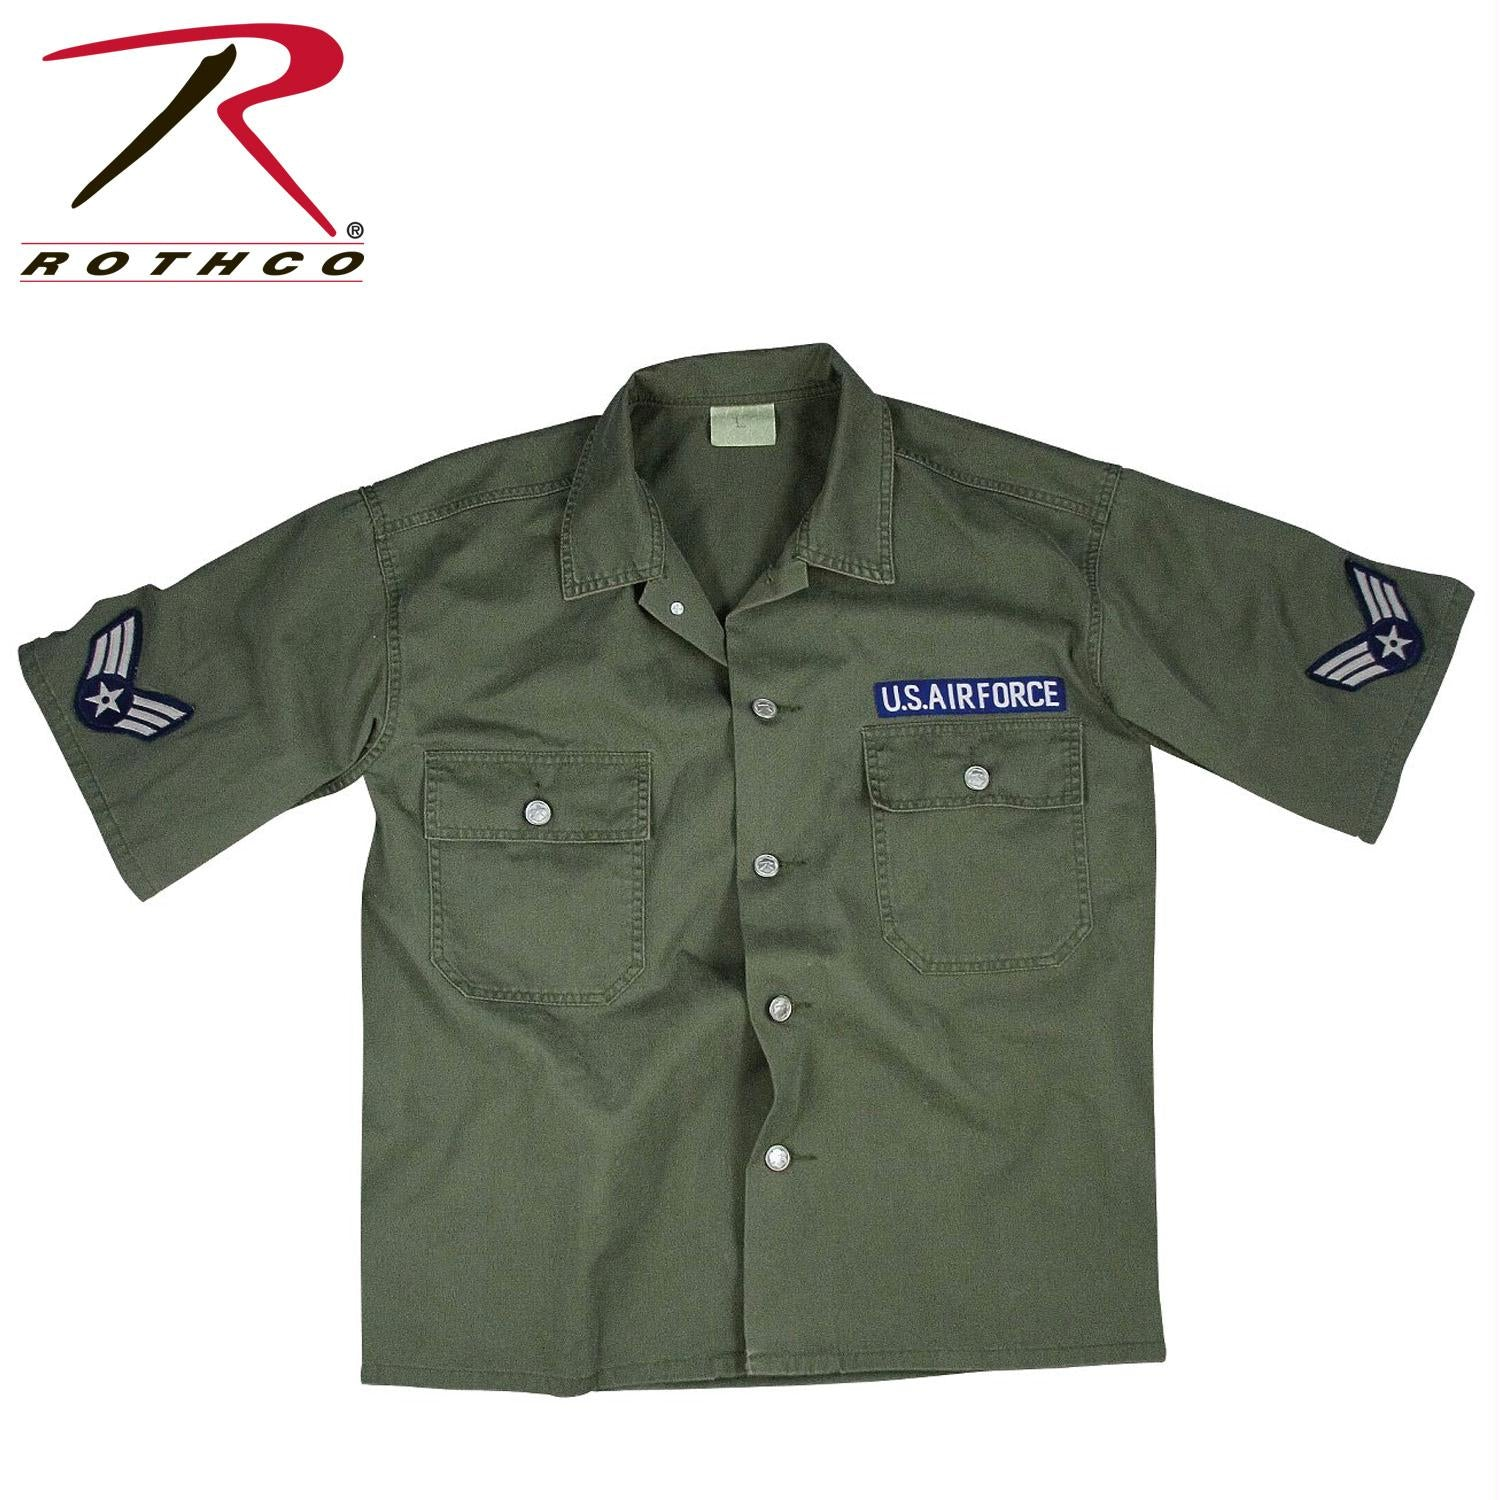 Rothco Vintage Army Air Force Short Sleeve BDU Shirt - 2XL